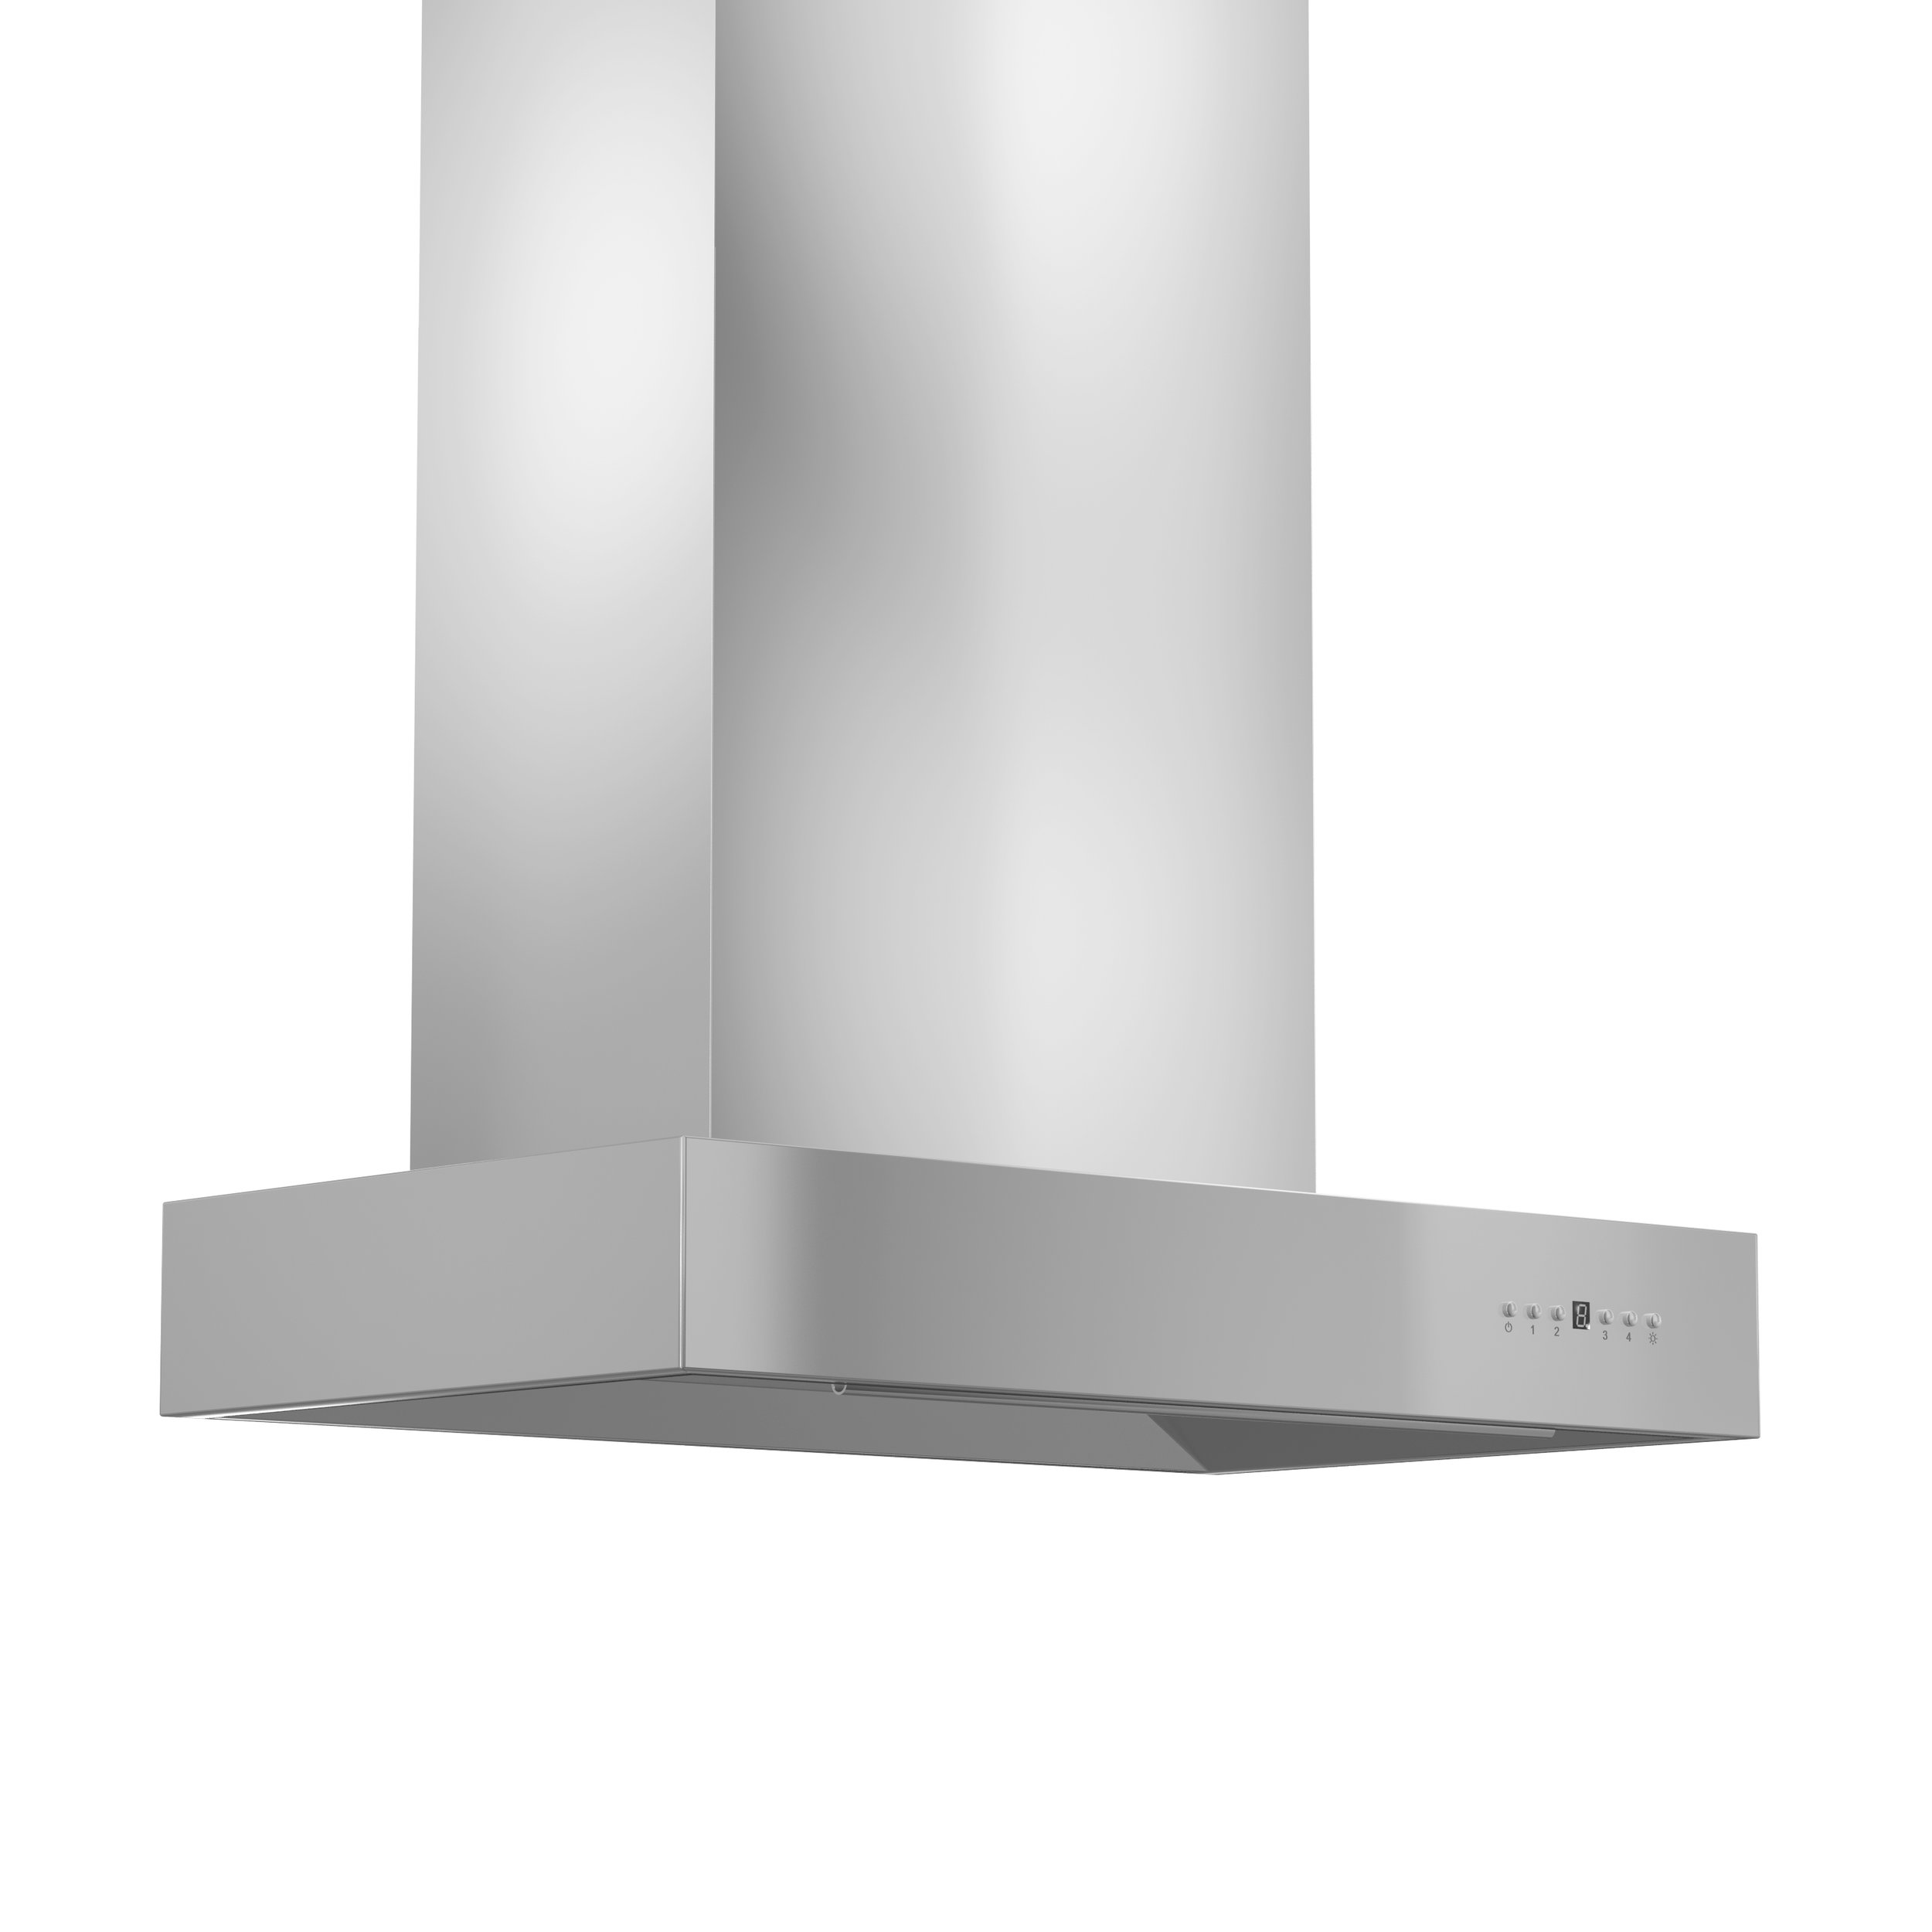 zline-stainless-steel-wall-mounted-range-hood-KECOM-main.jpg